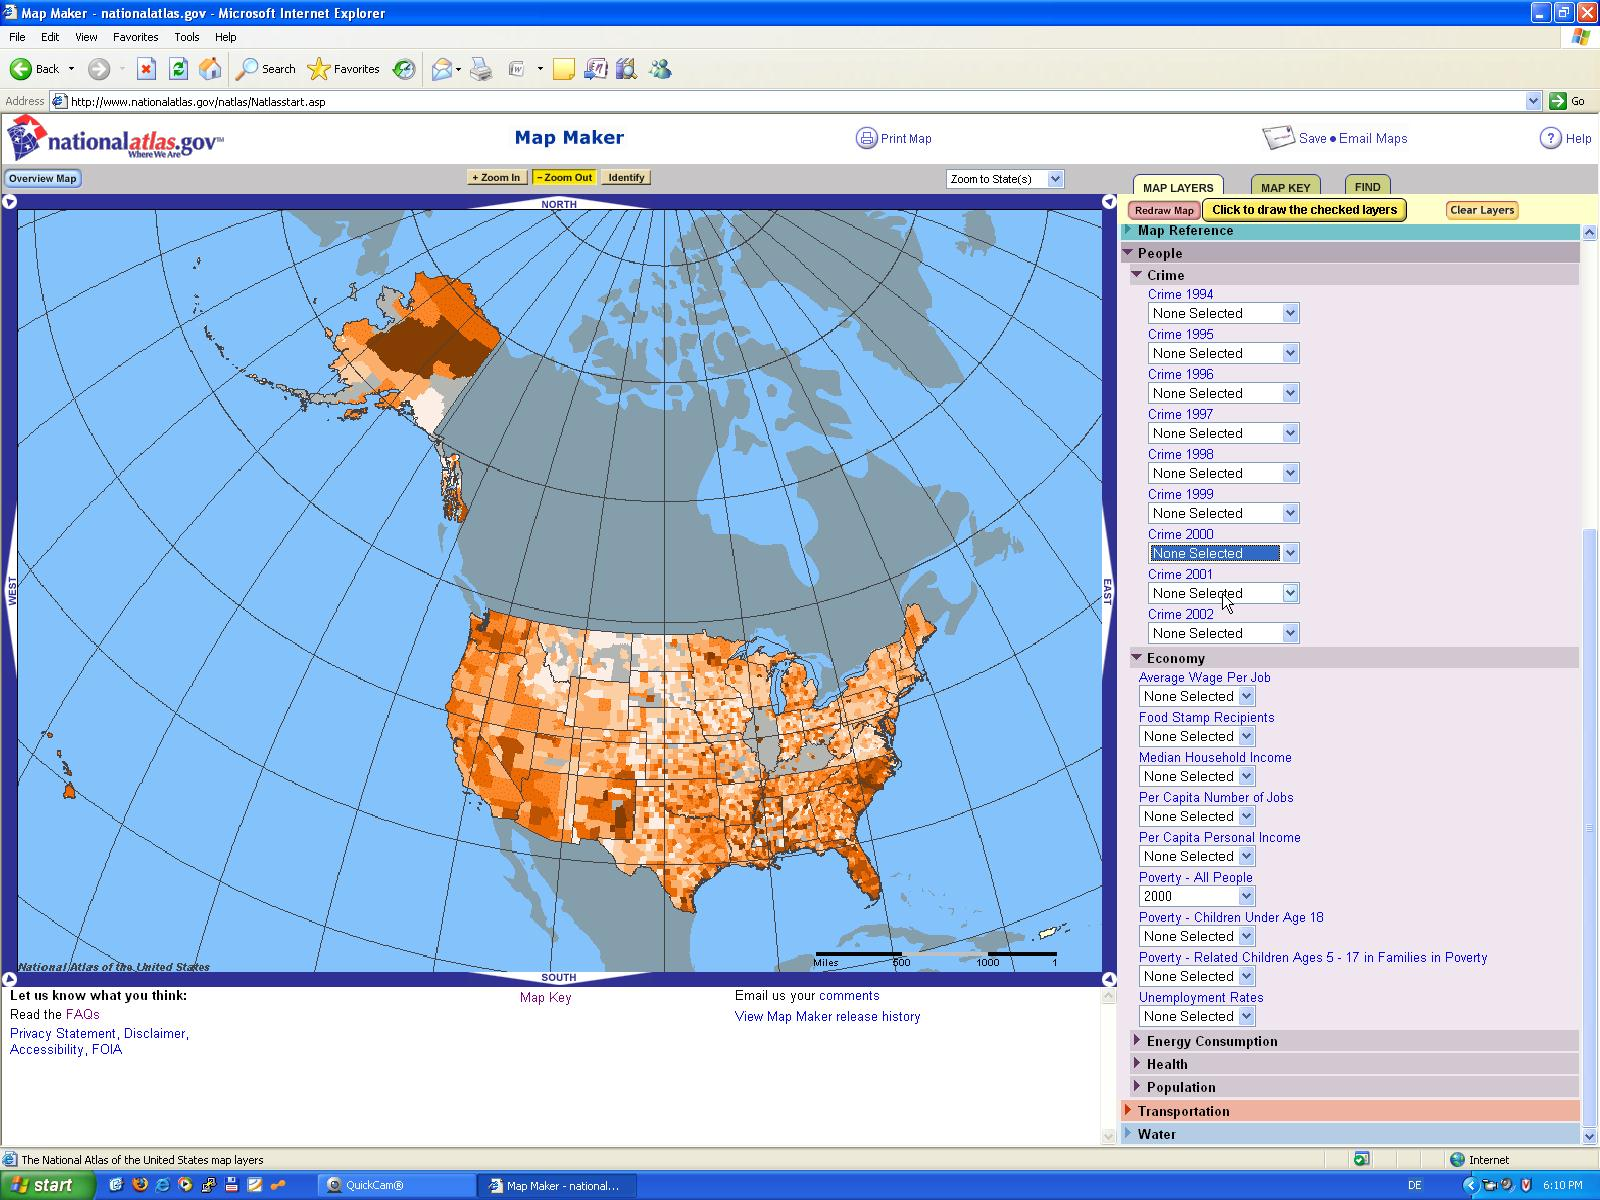 A screenshot of National Atlas